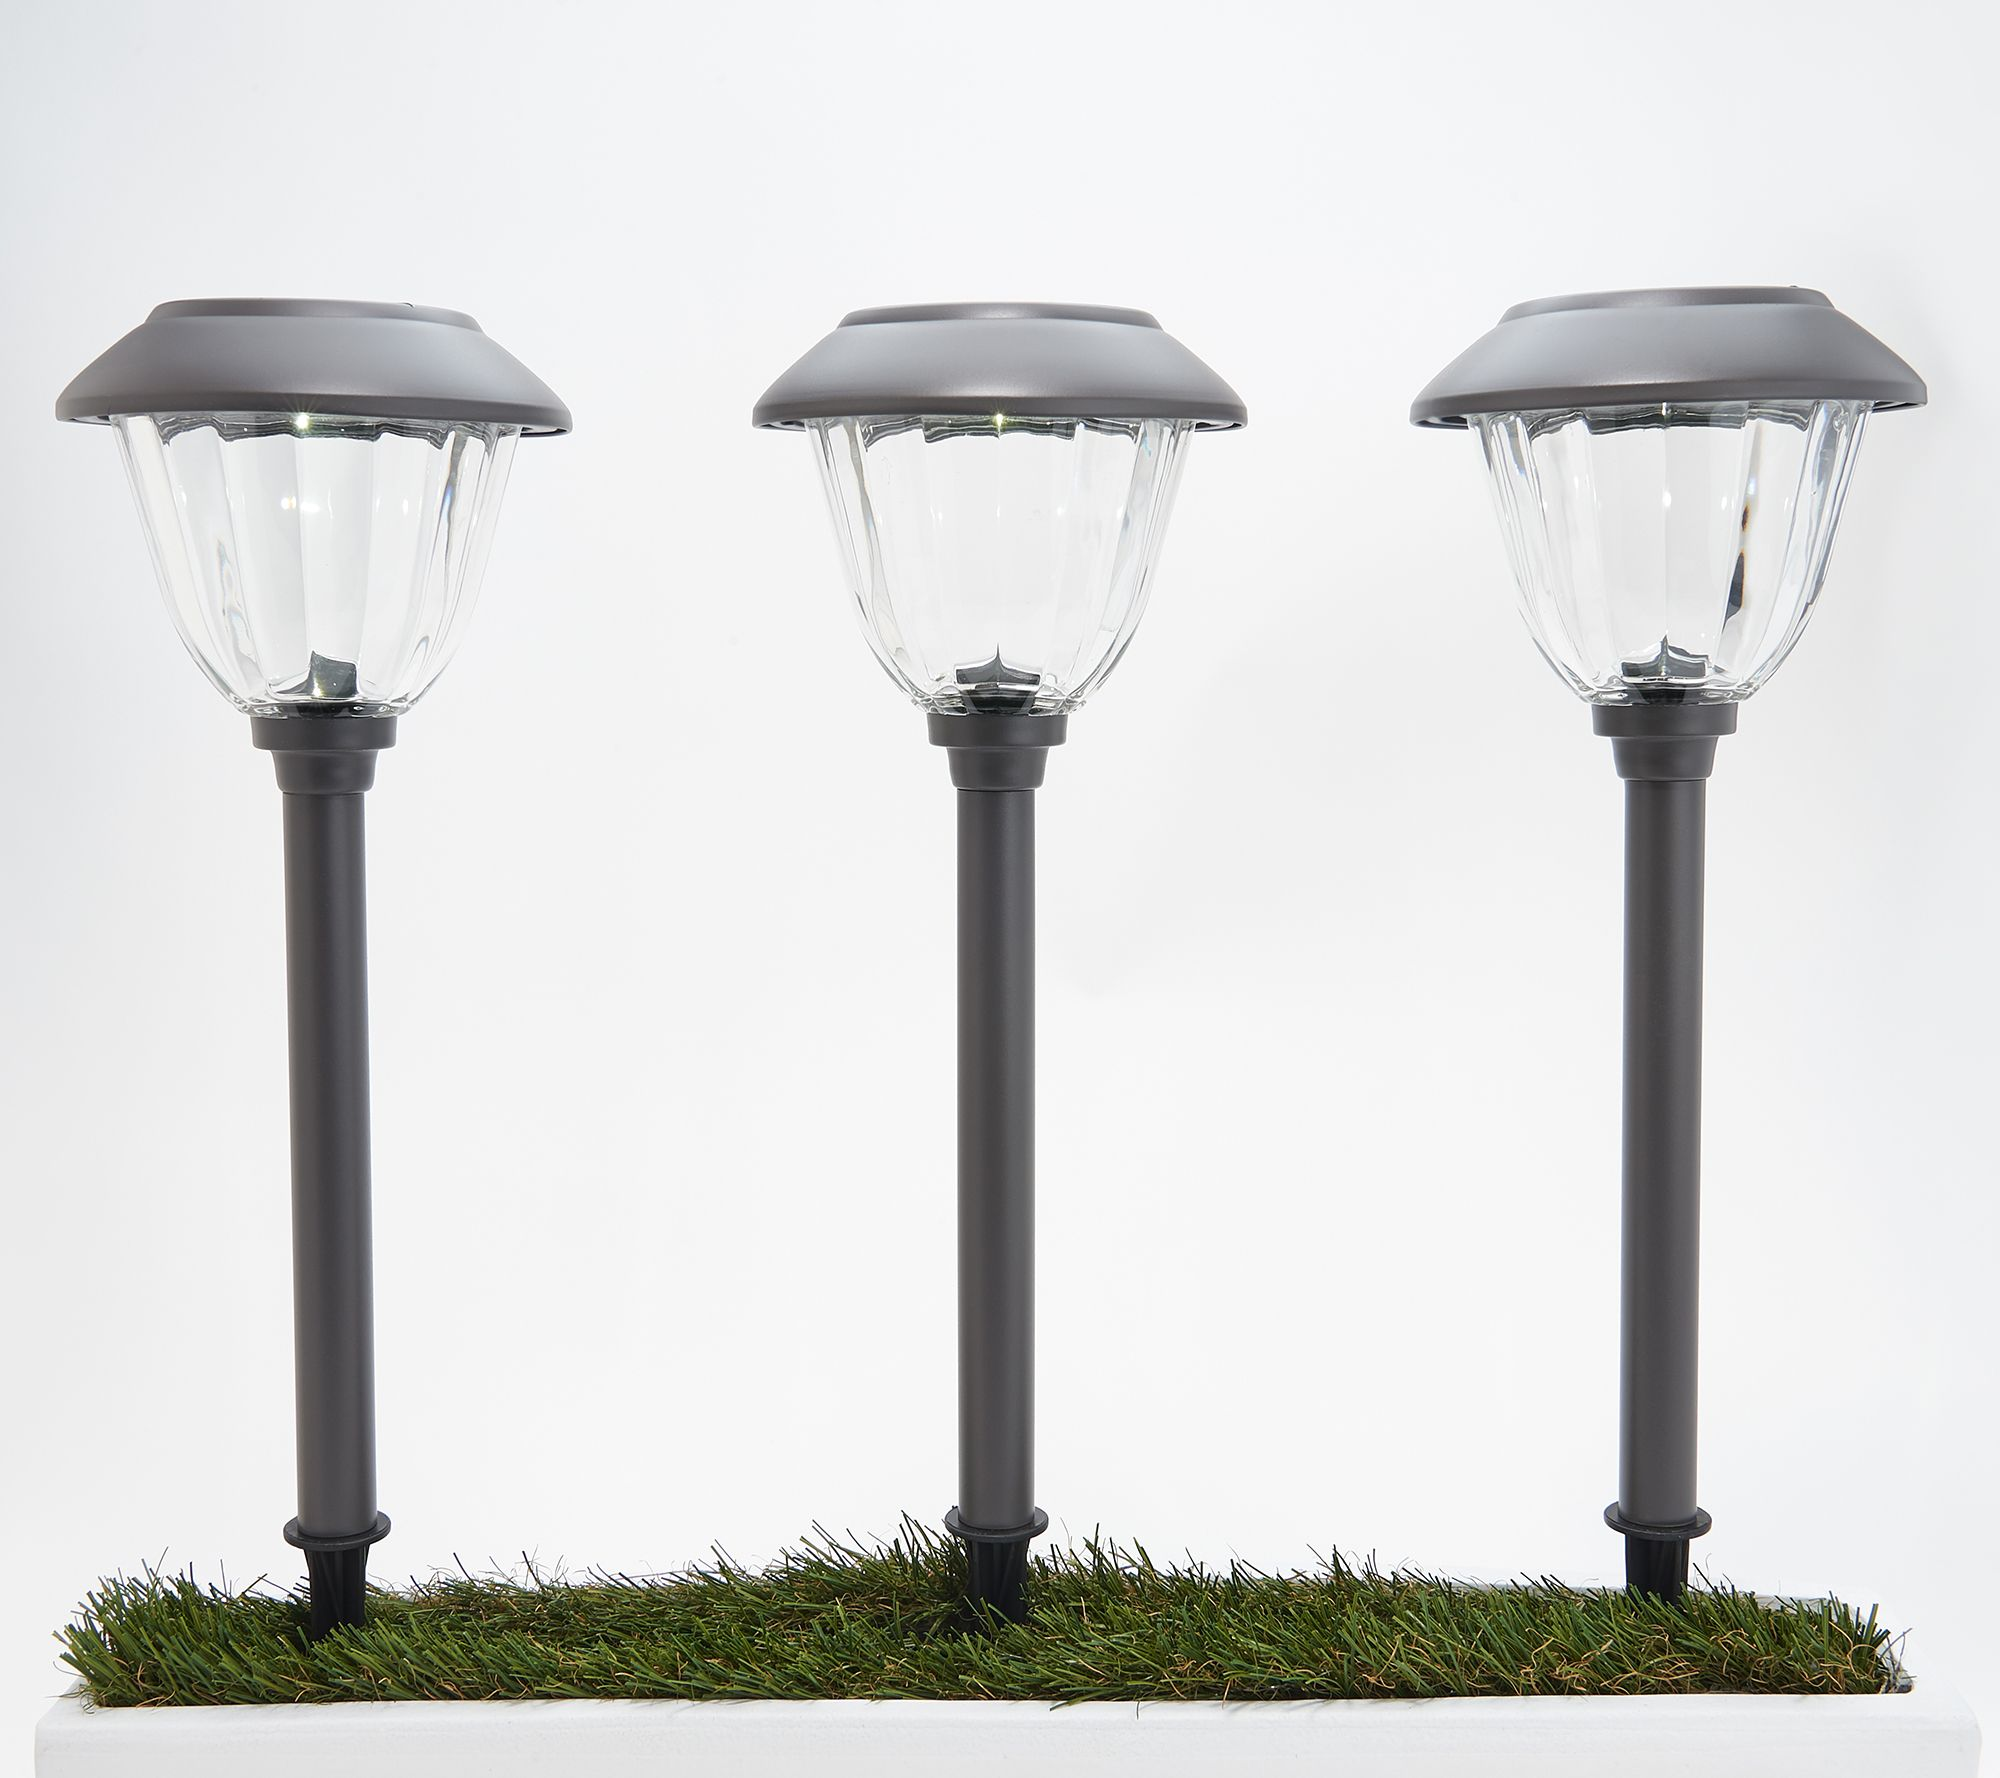 10 Piece Solar Landscape Light Set